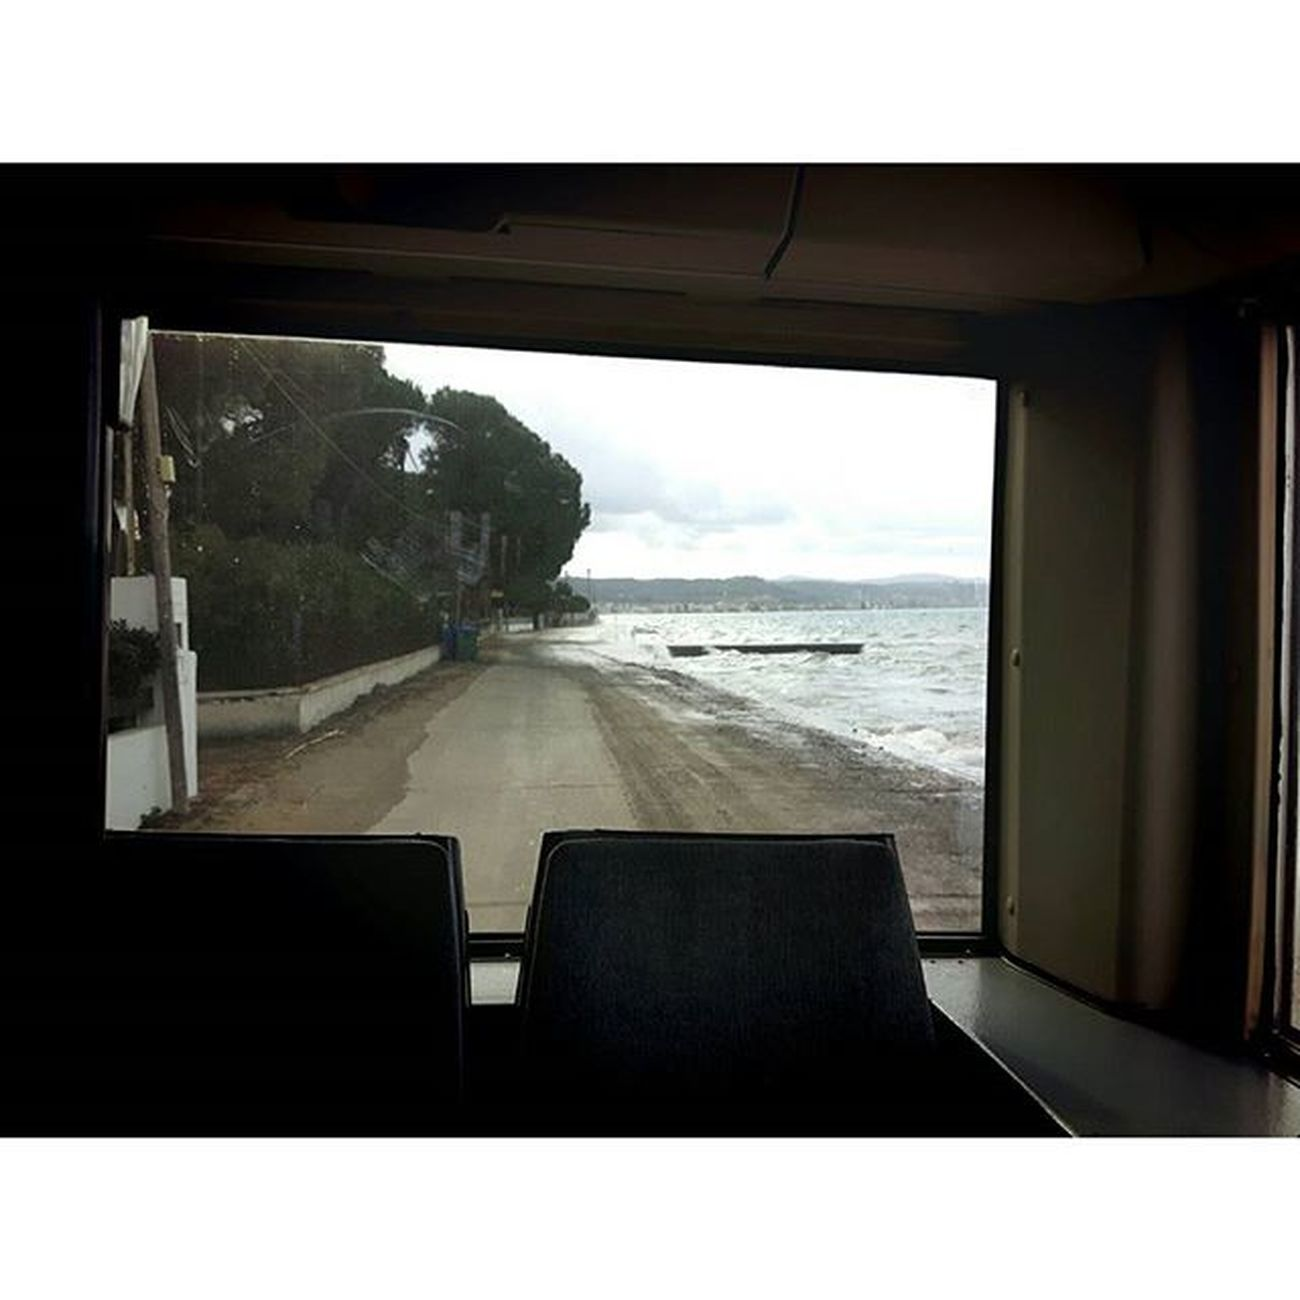 On the way back to Patras Insta_patras Instapatra Astiko5 Sea Windowview Sea Winter